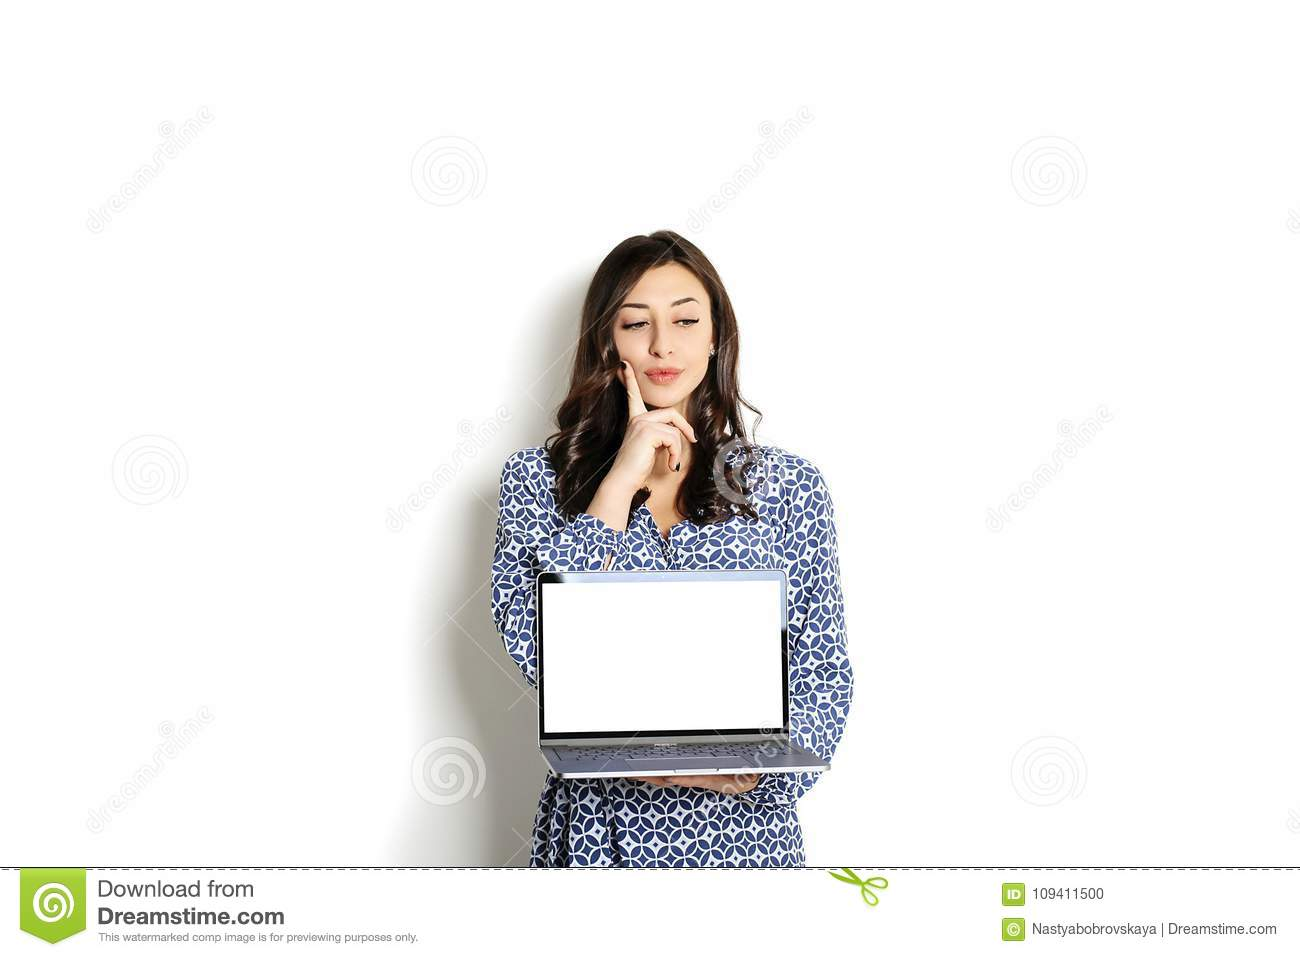 Portrait, smiling confident pretty woman long sleeve dress, holding grey laptop device and typing while standing against solid whi